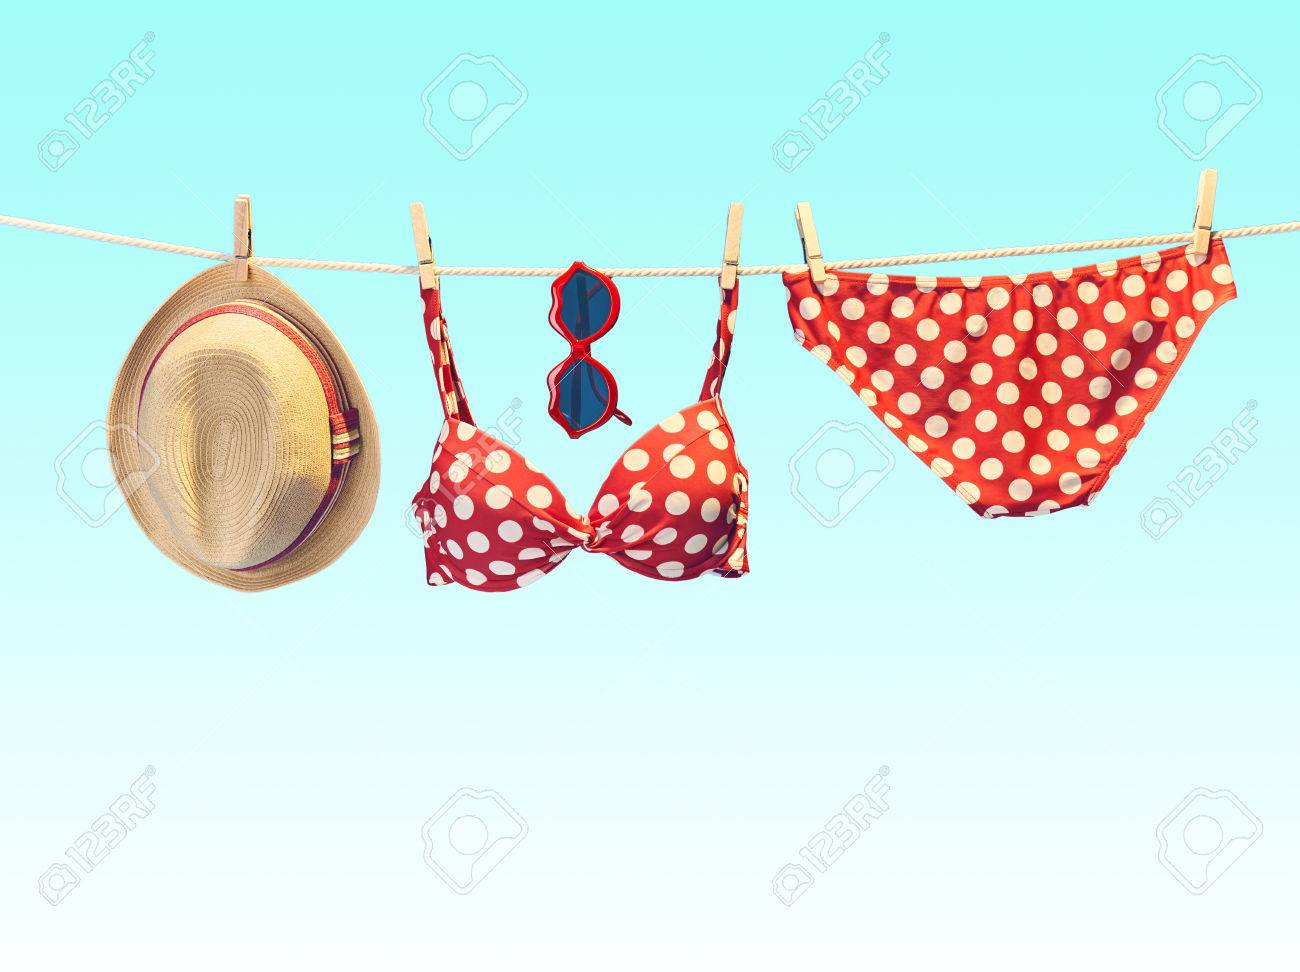 d91c784fd4602 Summer clothes and accessories stylish set. Fashion swimsuit bikini red  polka dots